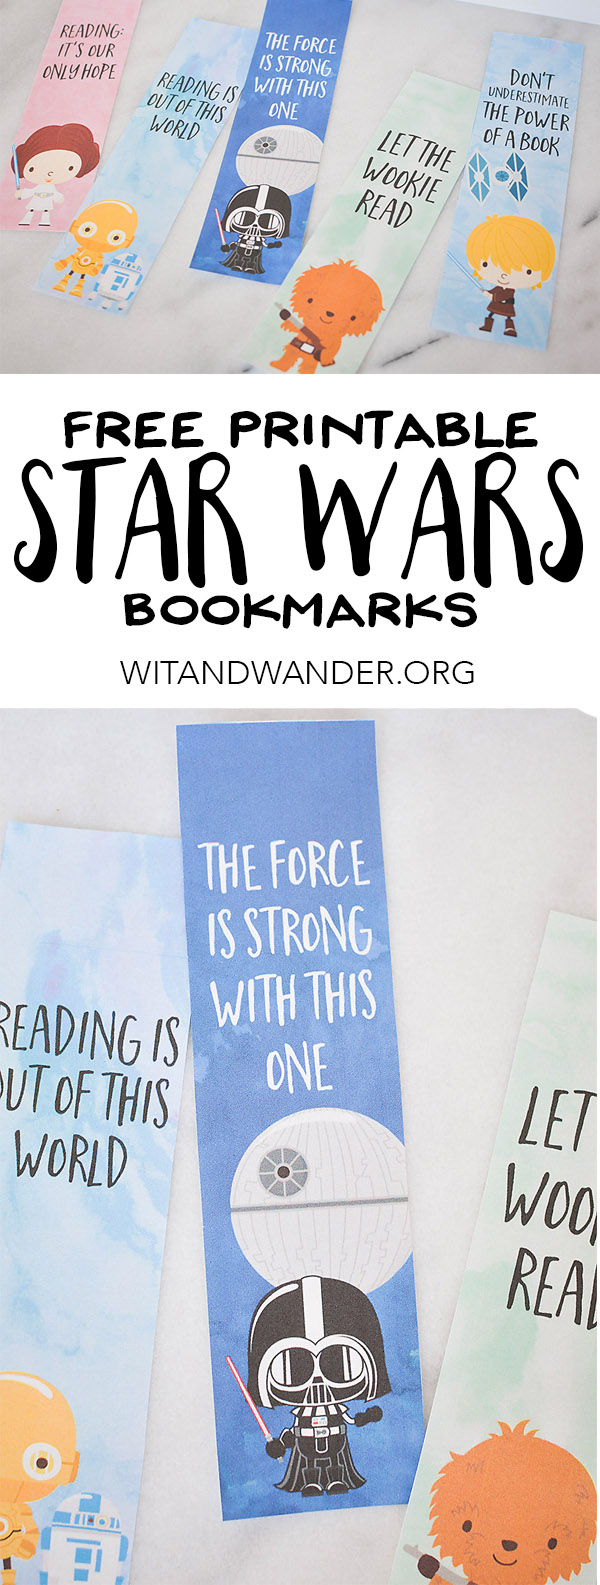 It's just a photo of Sassy Star Wars Bookmarks Printable